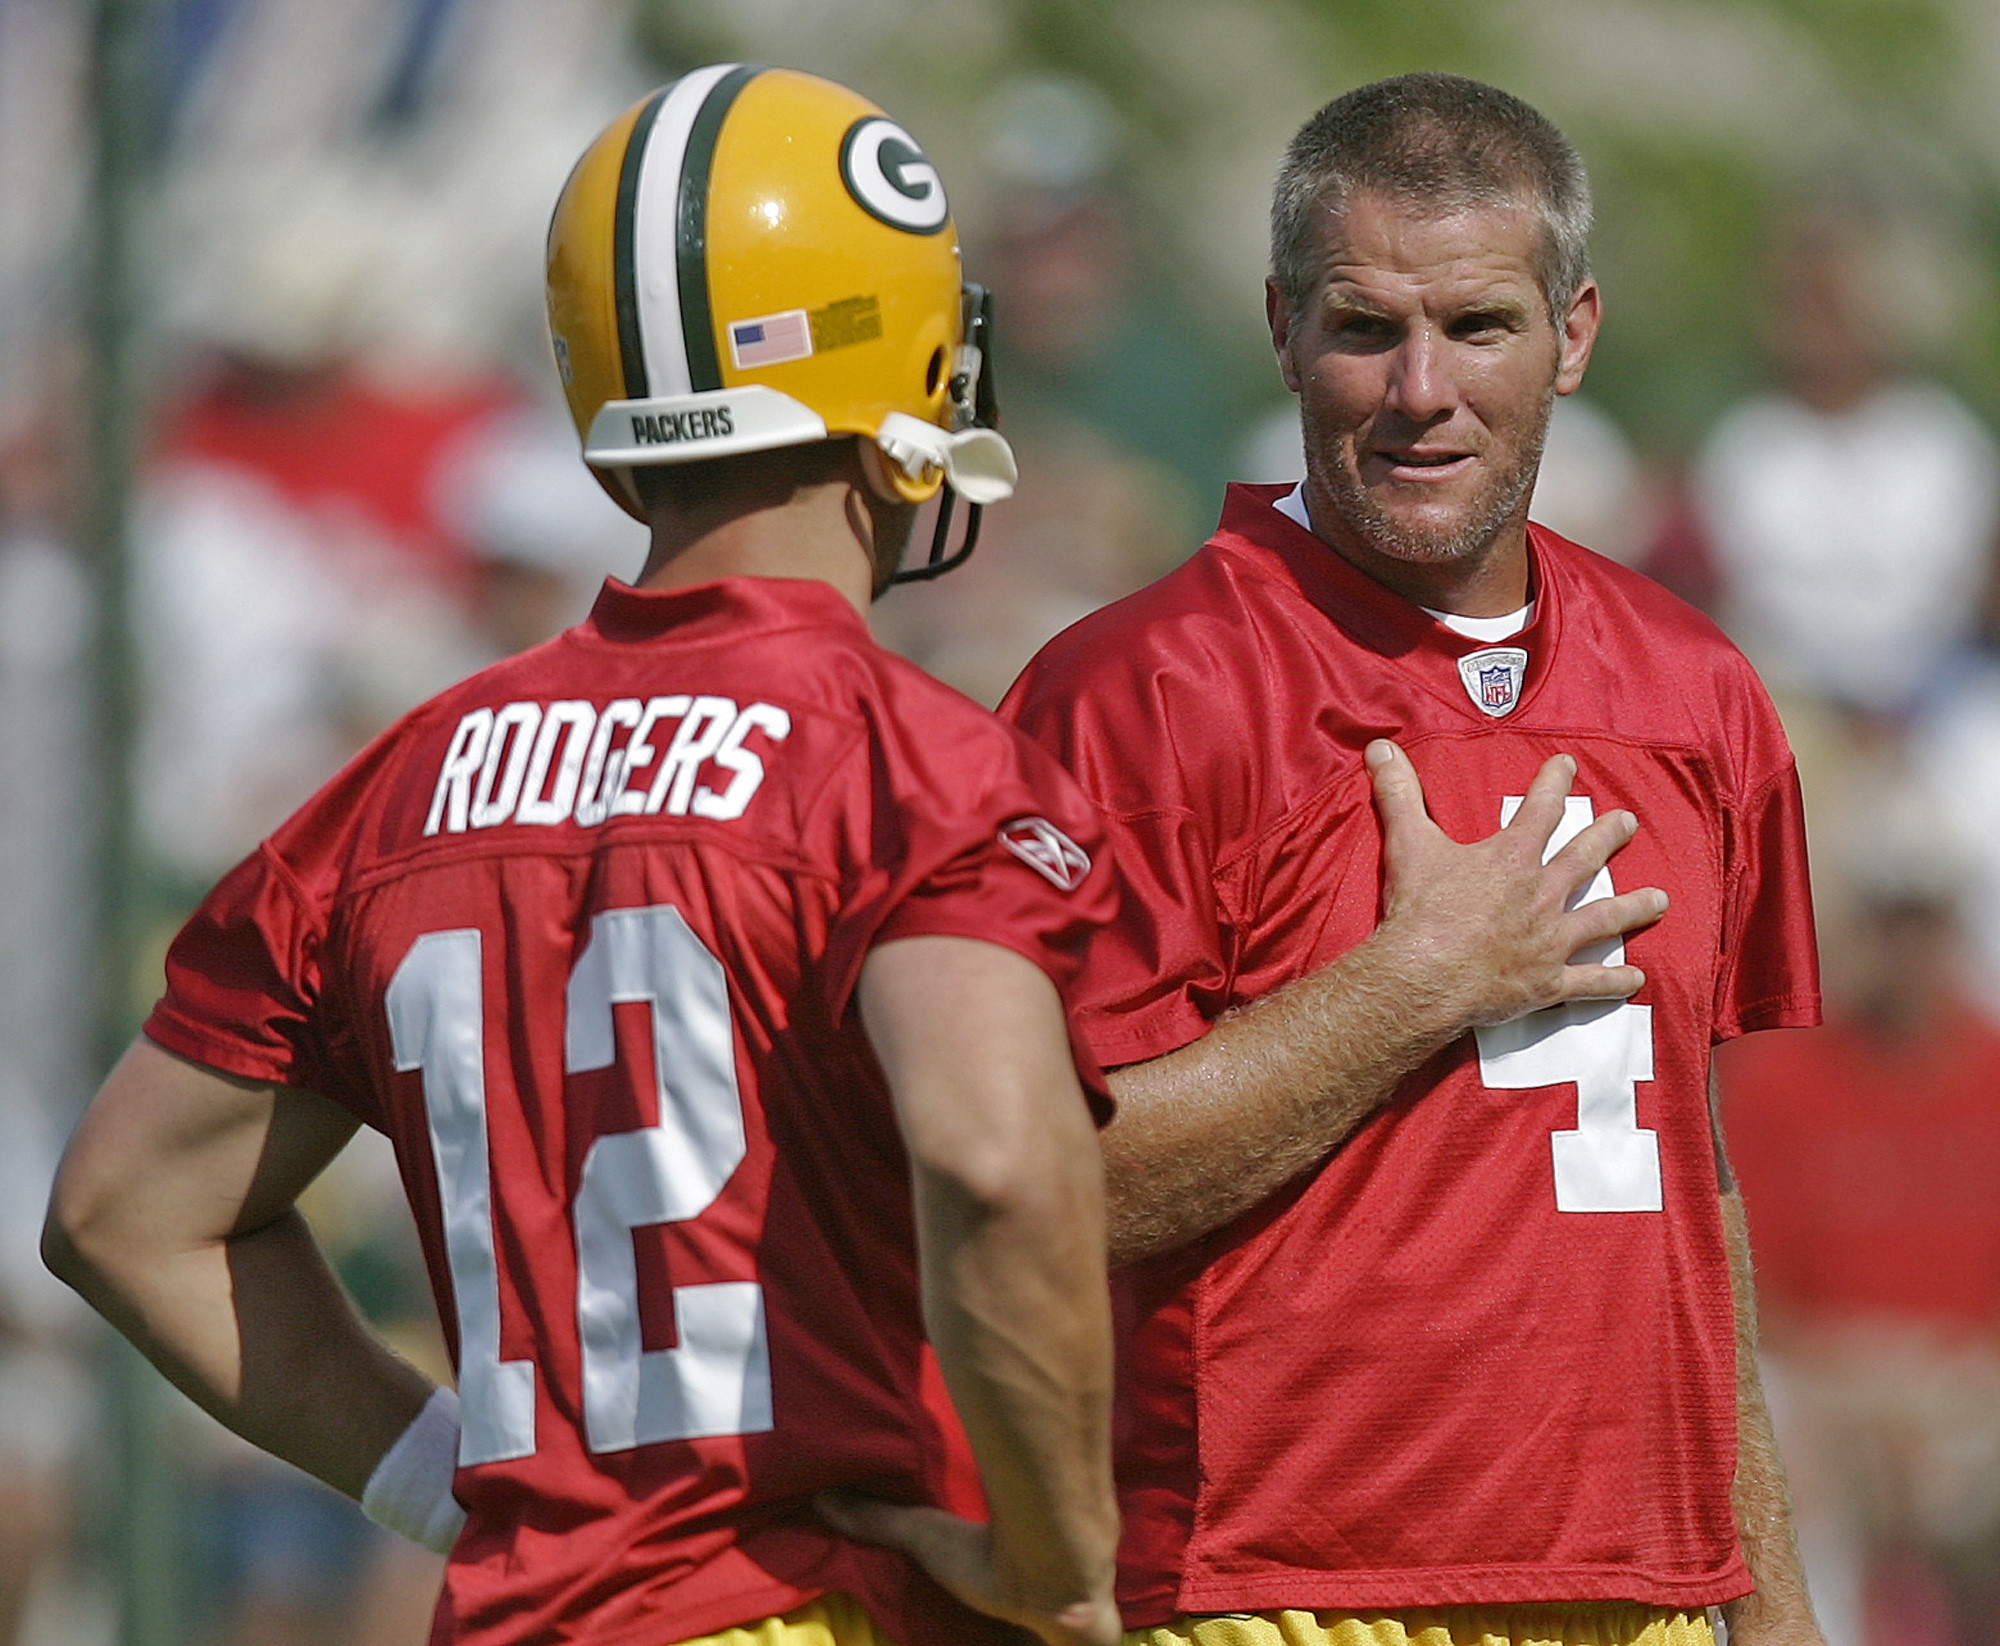 Aaron Rodgers explains benefits for developing a quarterback on